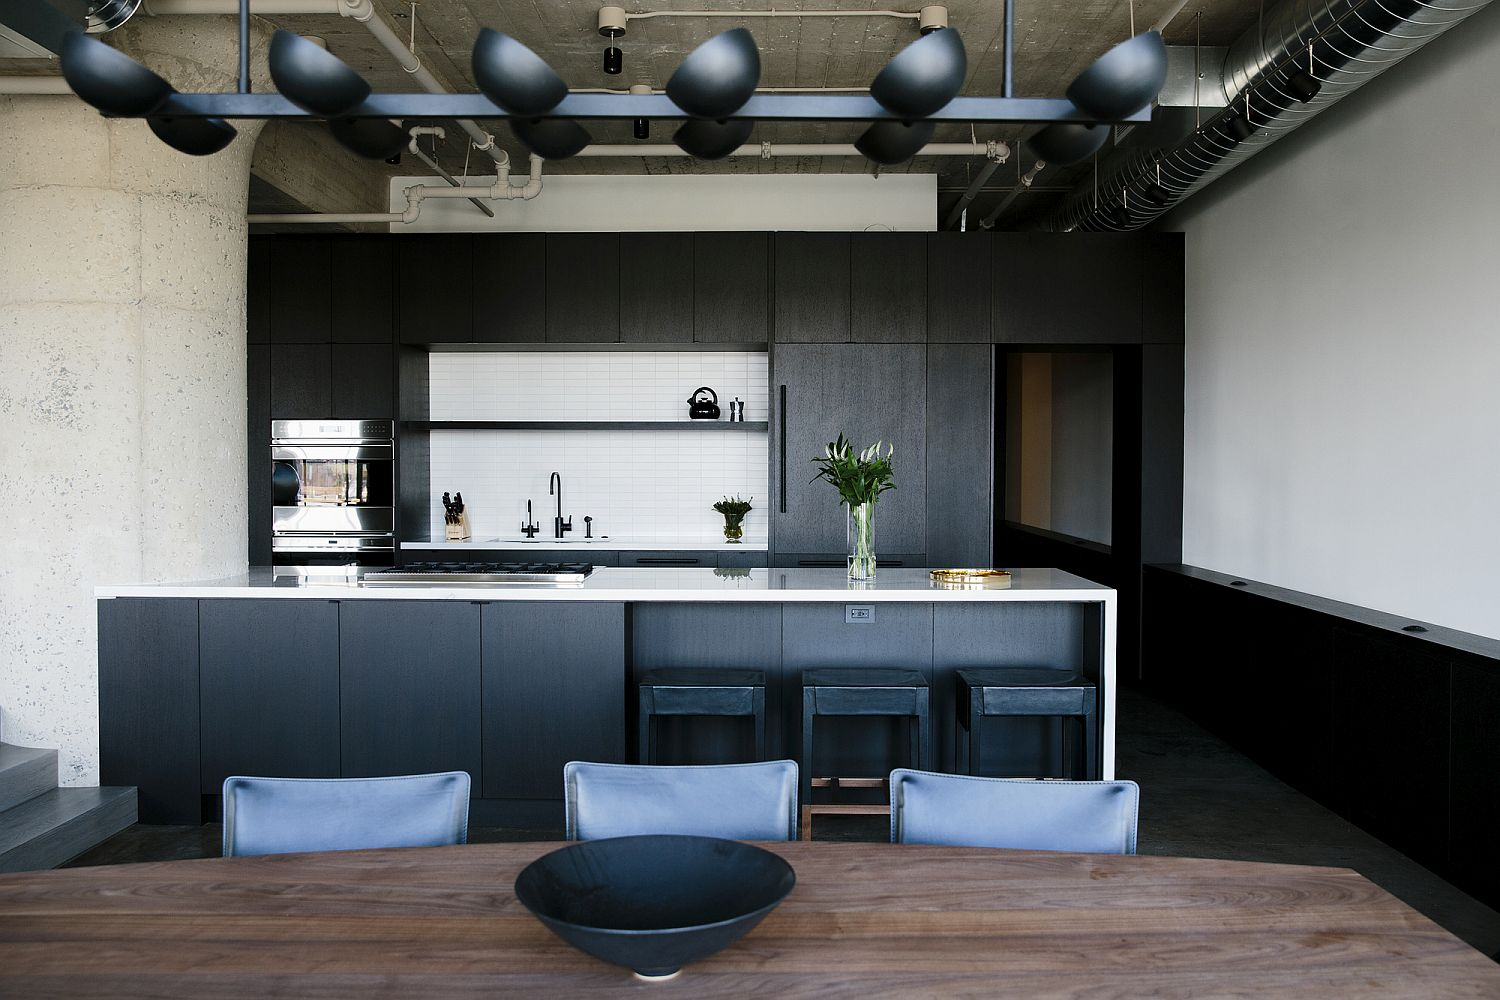 Fabulous kitchen in black with stunning lighting and an island in bluish-gray